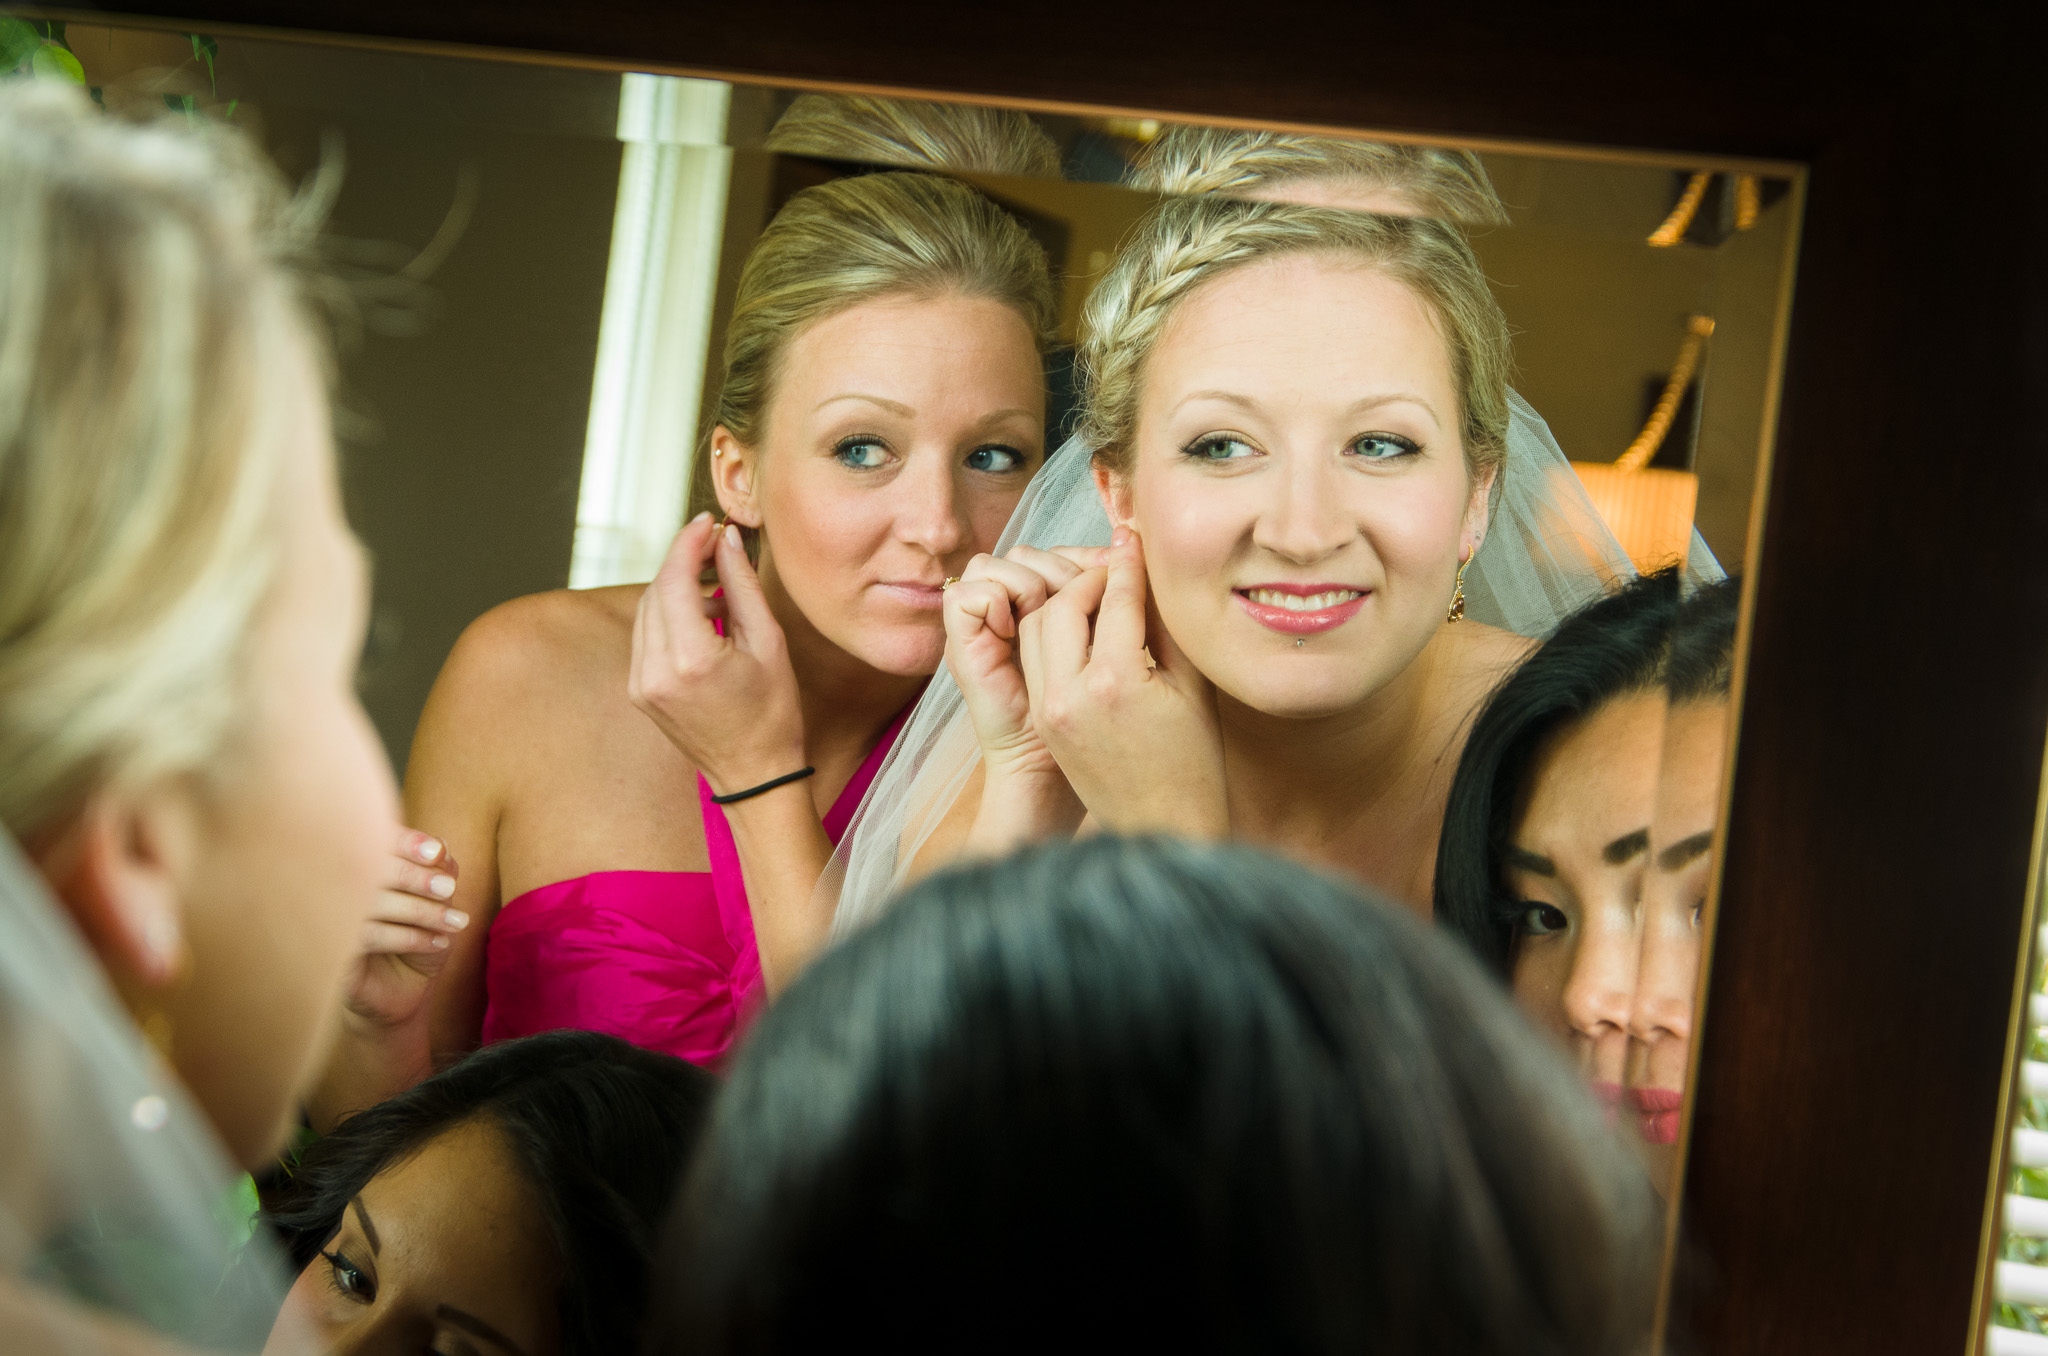 Bride and bridesmaids getting ready looking in mirror